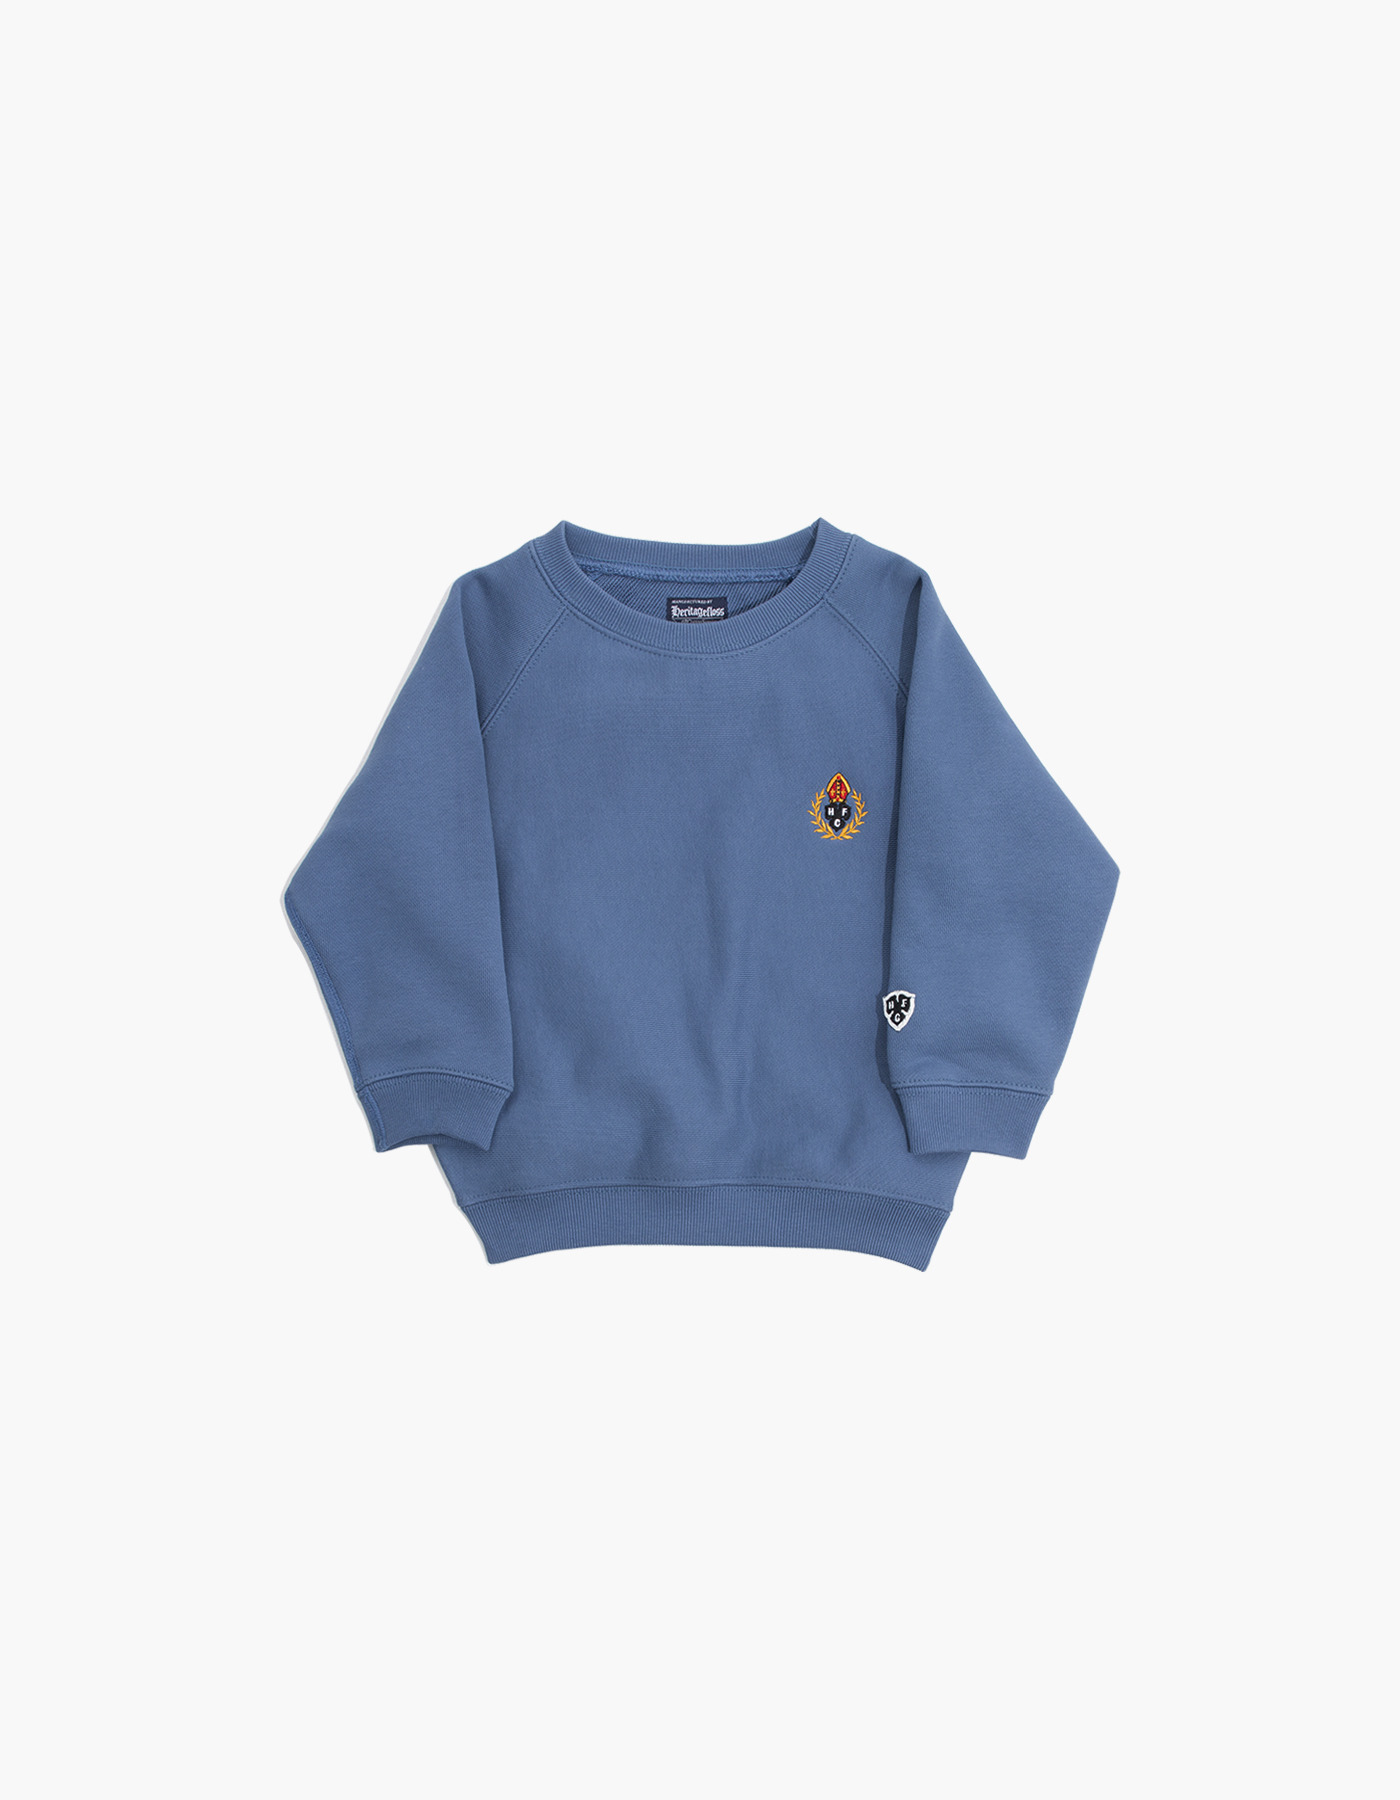 231 KIDS HFC CREWNECK / NAVY